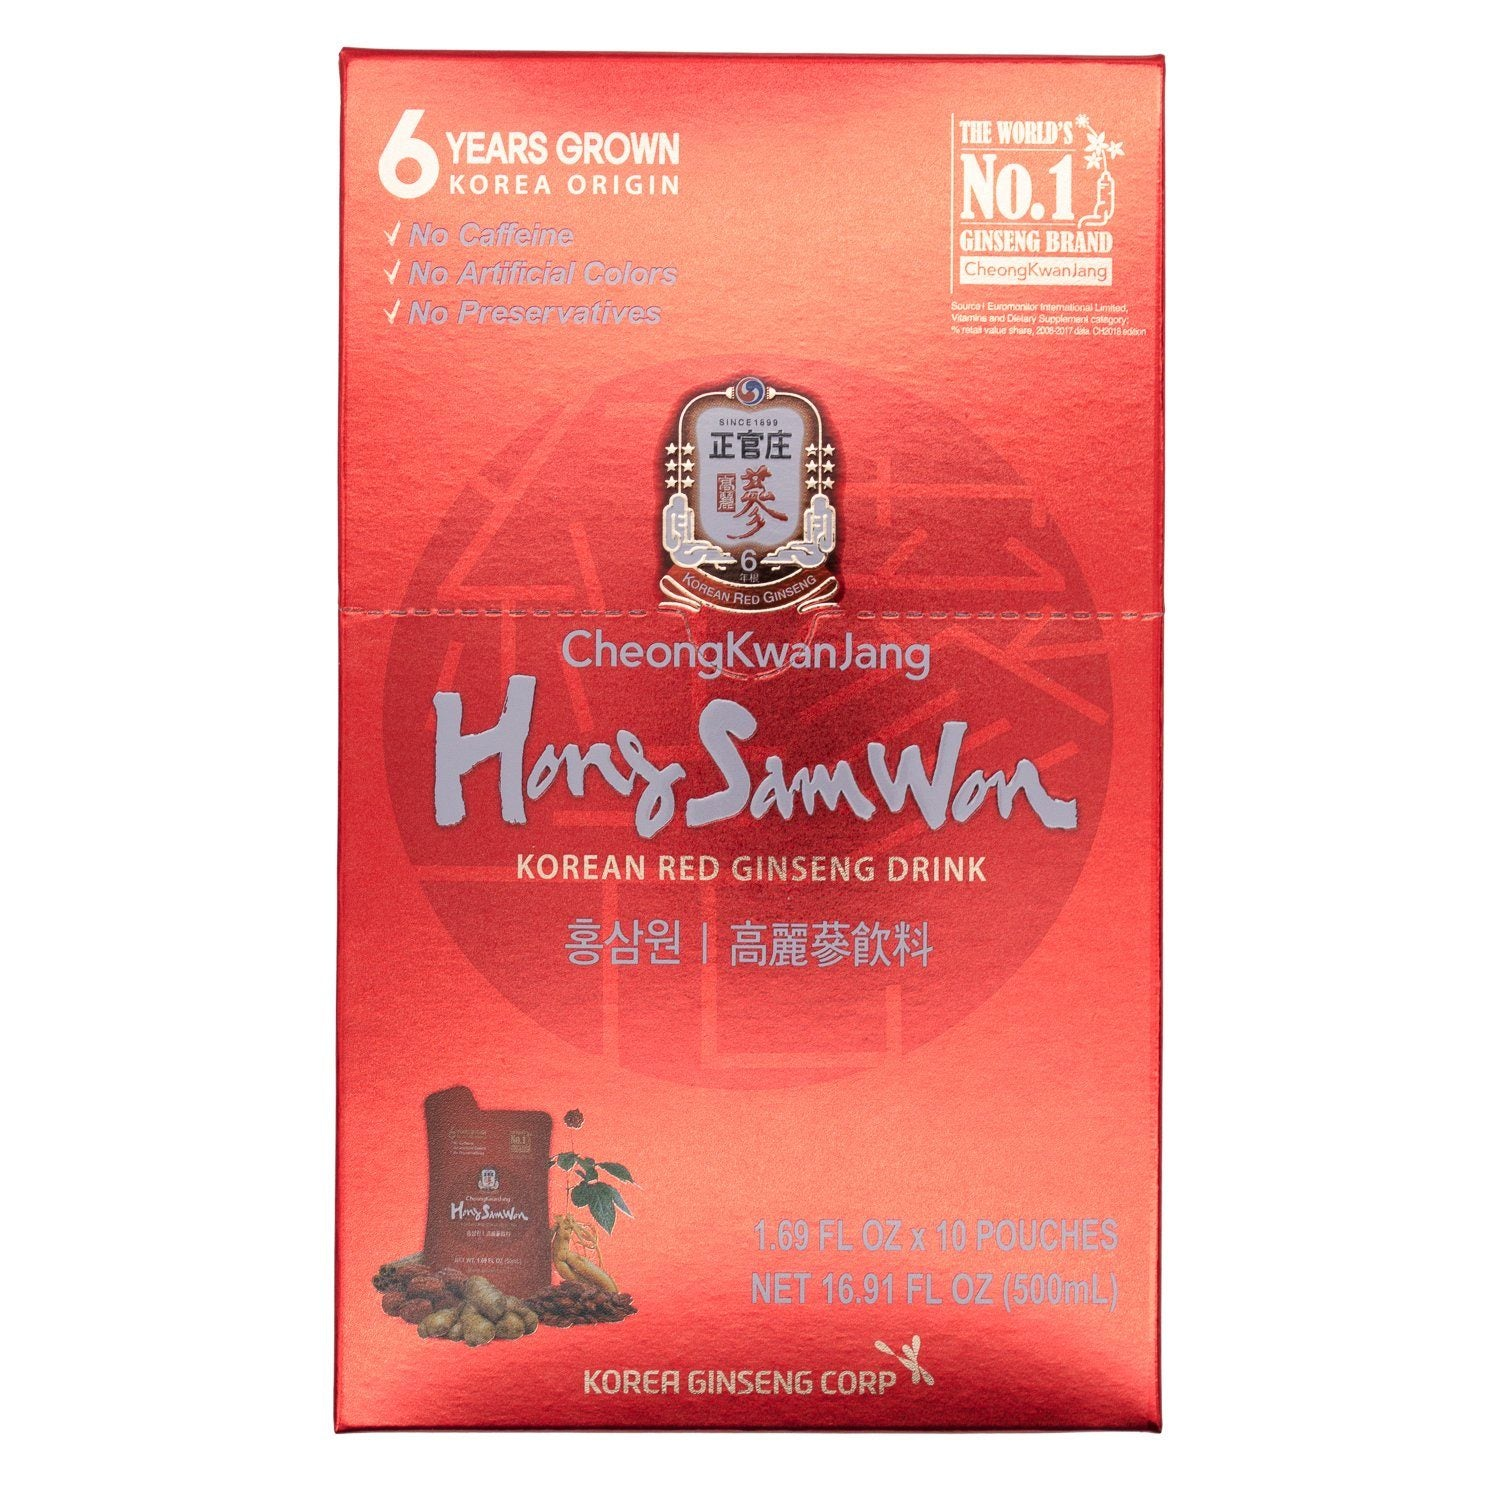 Hong Sam Won Red Ginseng Drink Hong Sam Won 1.69 Fl Oz-10 Count